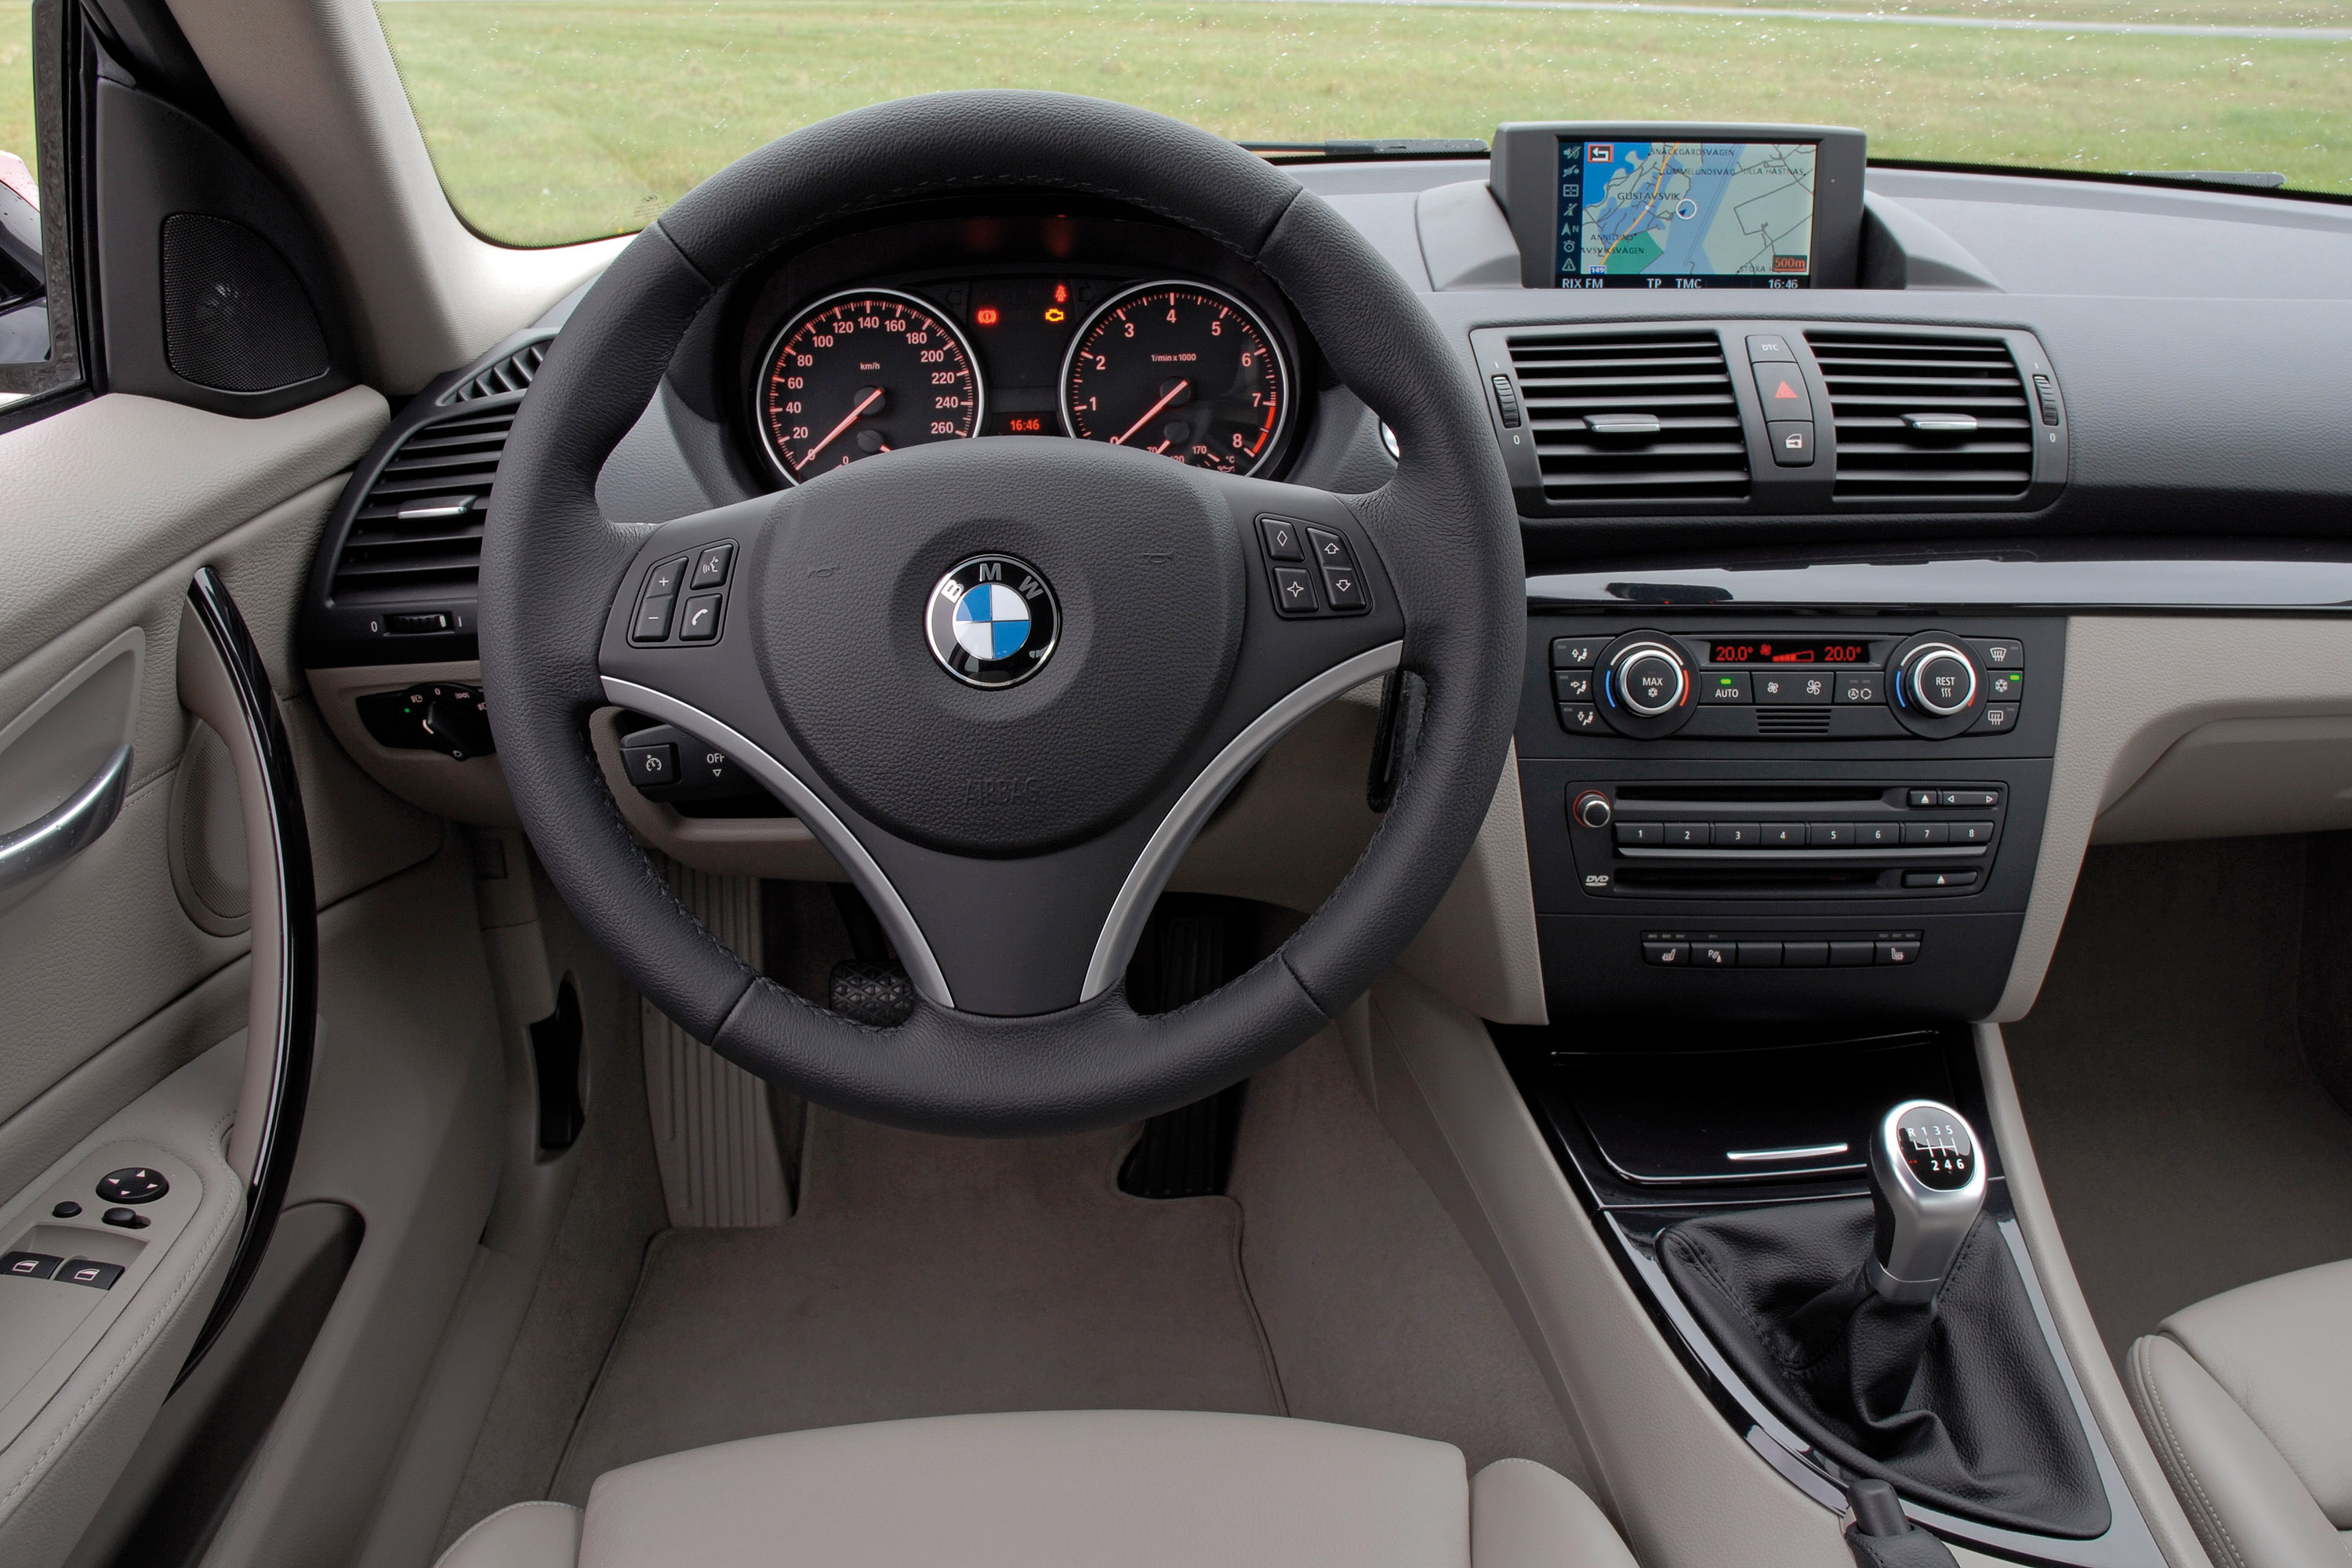 2007 BMW 1 Series E82 135i Coupe  Picture 37986